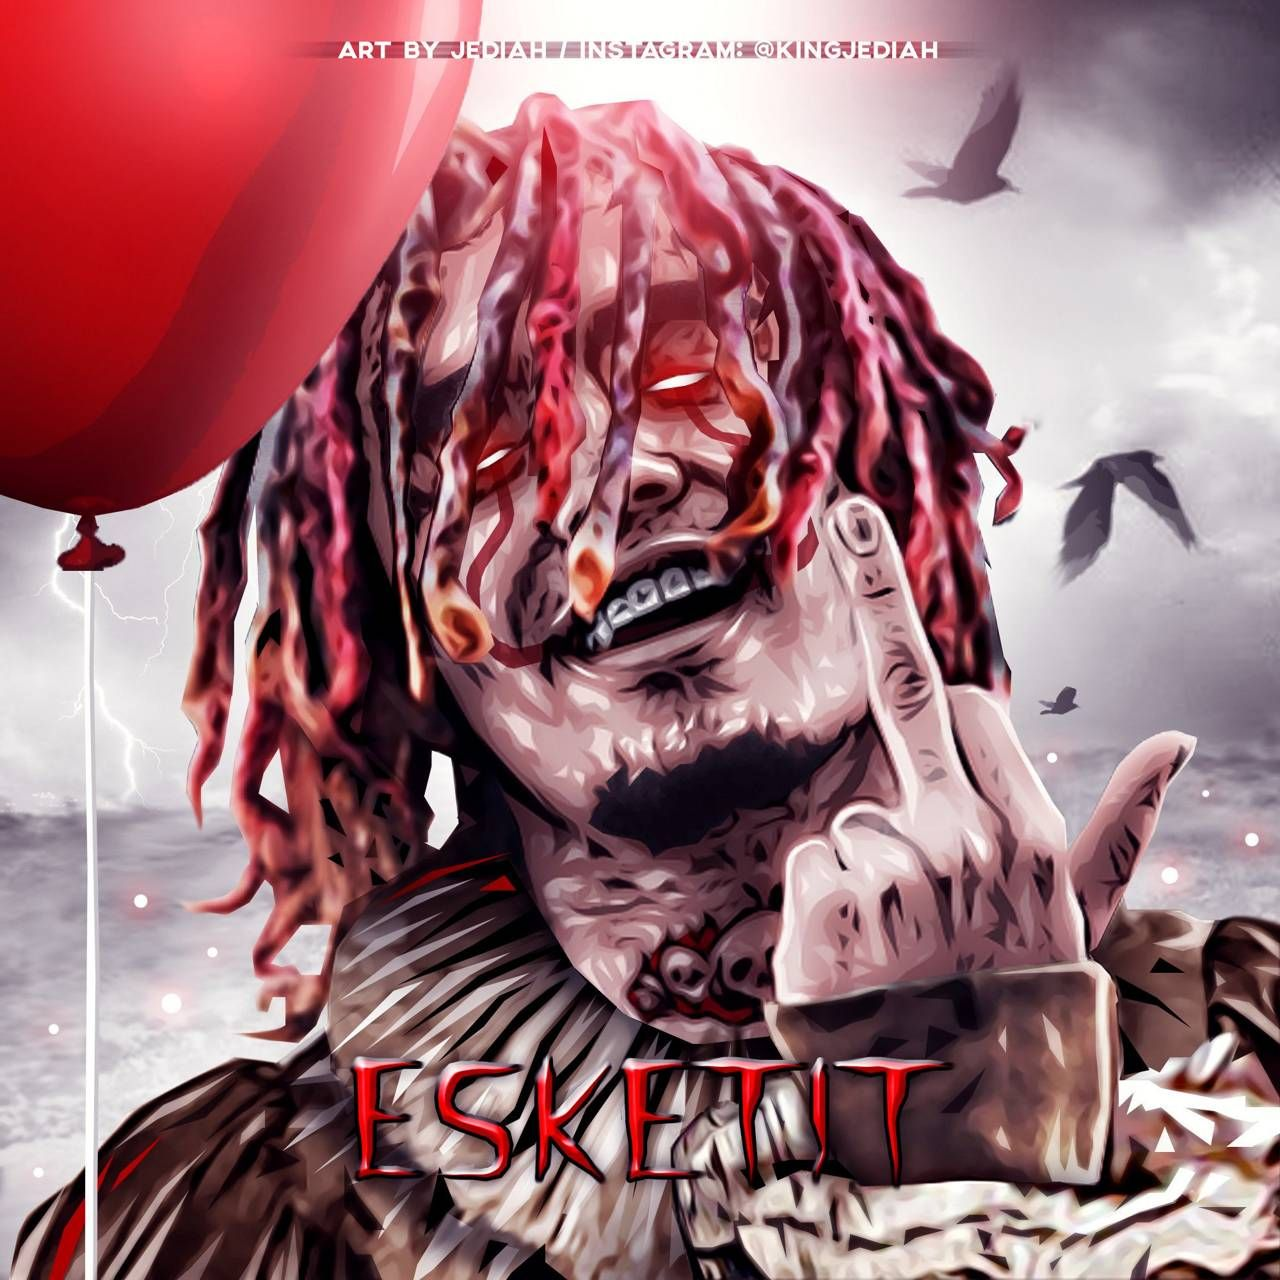 download lil pump wallpaper LIL PUMP WALLPAPERS in 2019 1280x1280